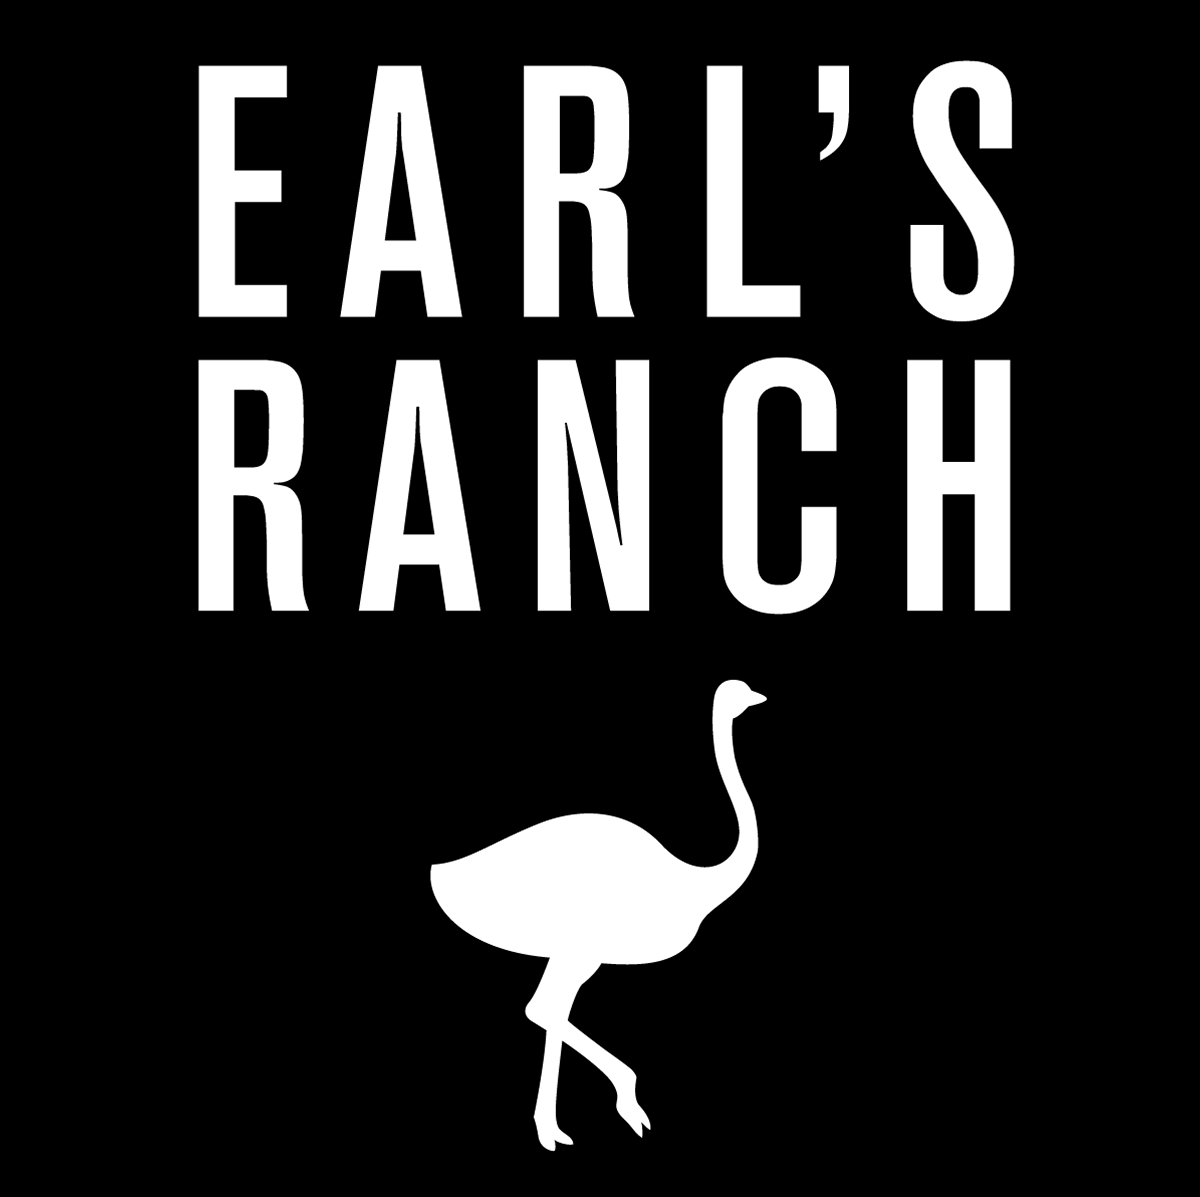 Shirt design mission tx - I Just Watched Tremors 2 Last Night So Now This Is A Shirt